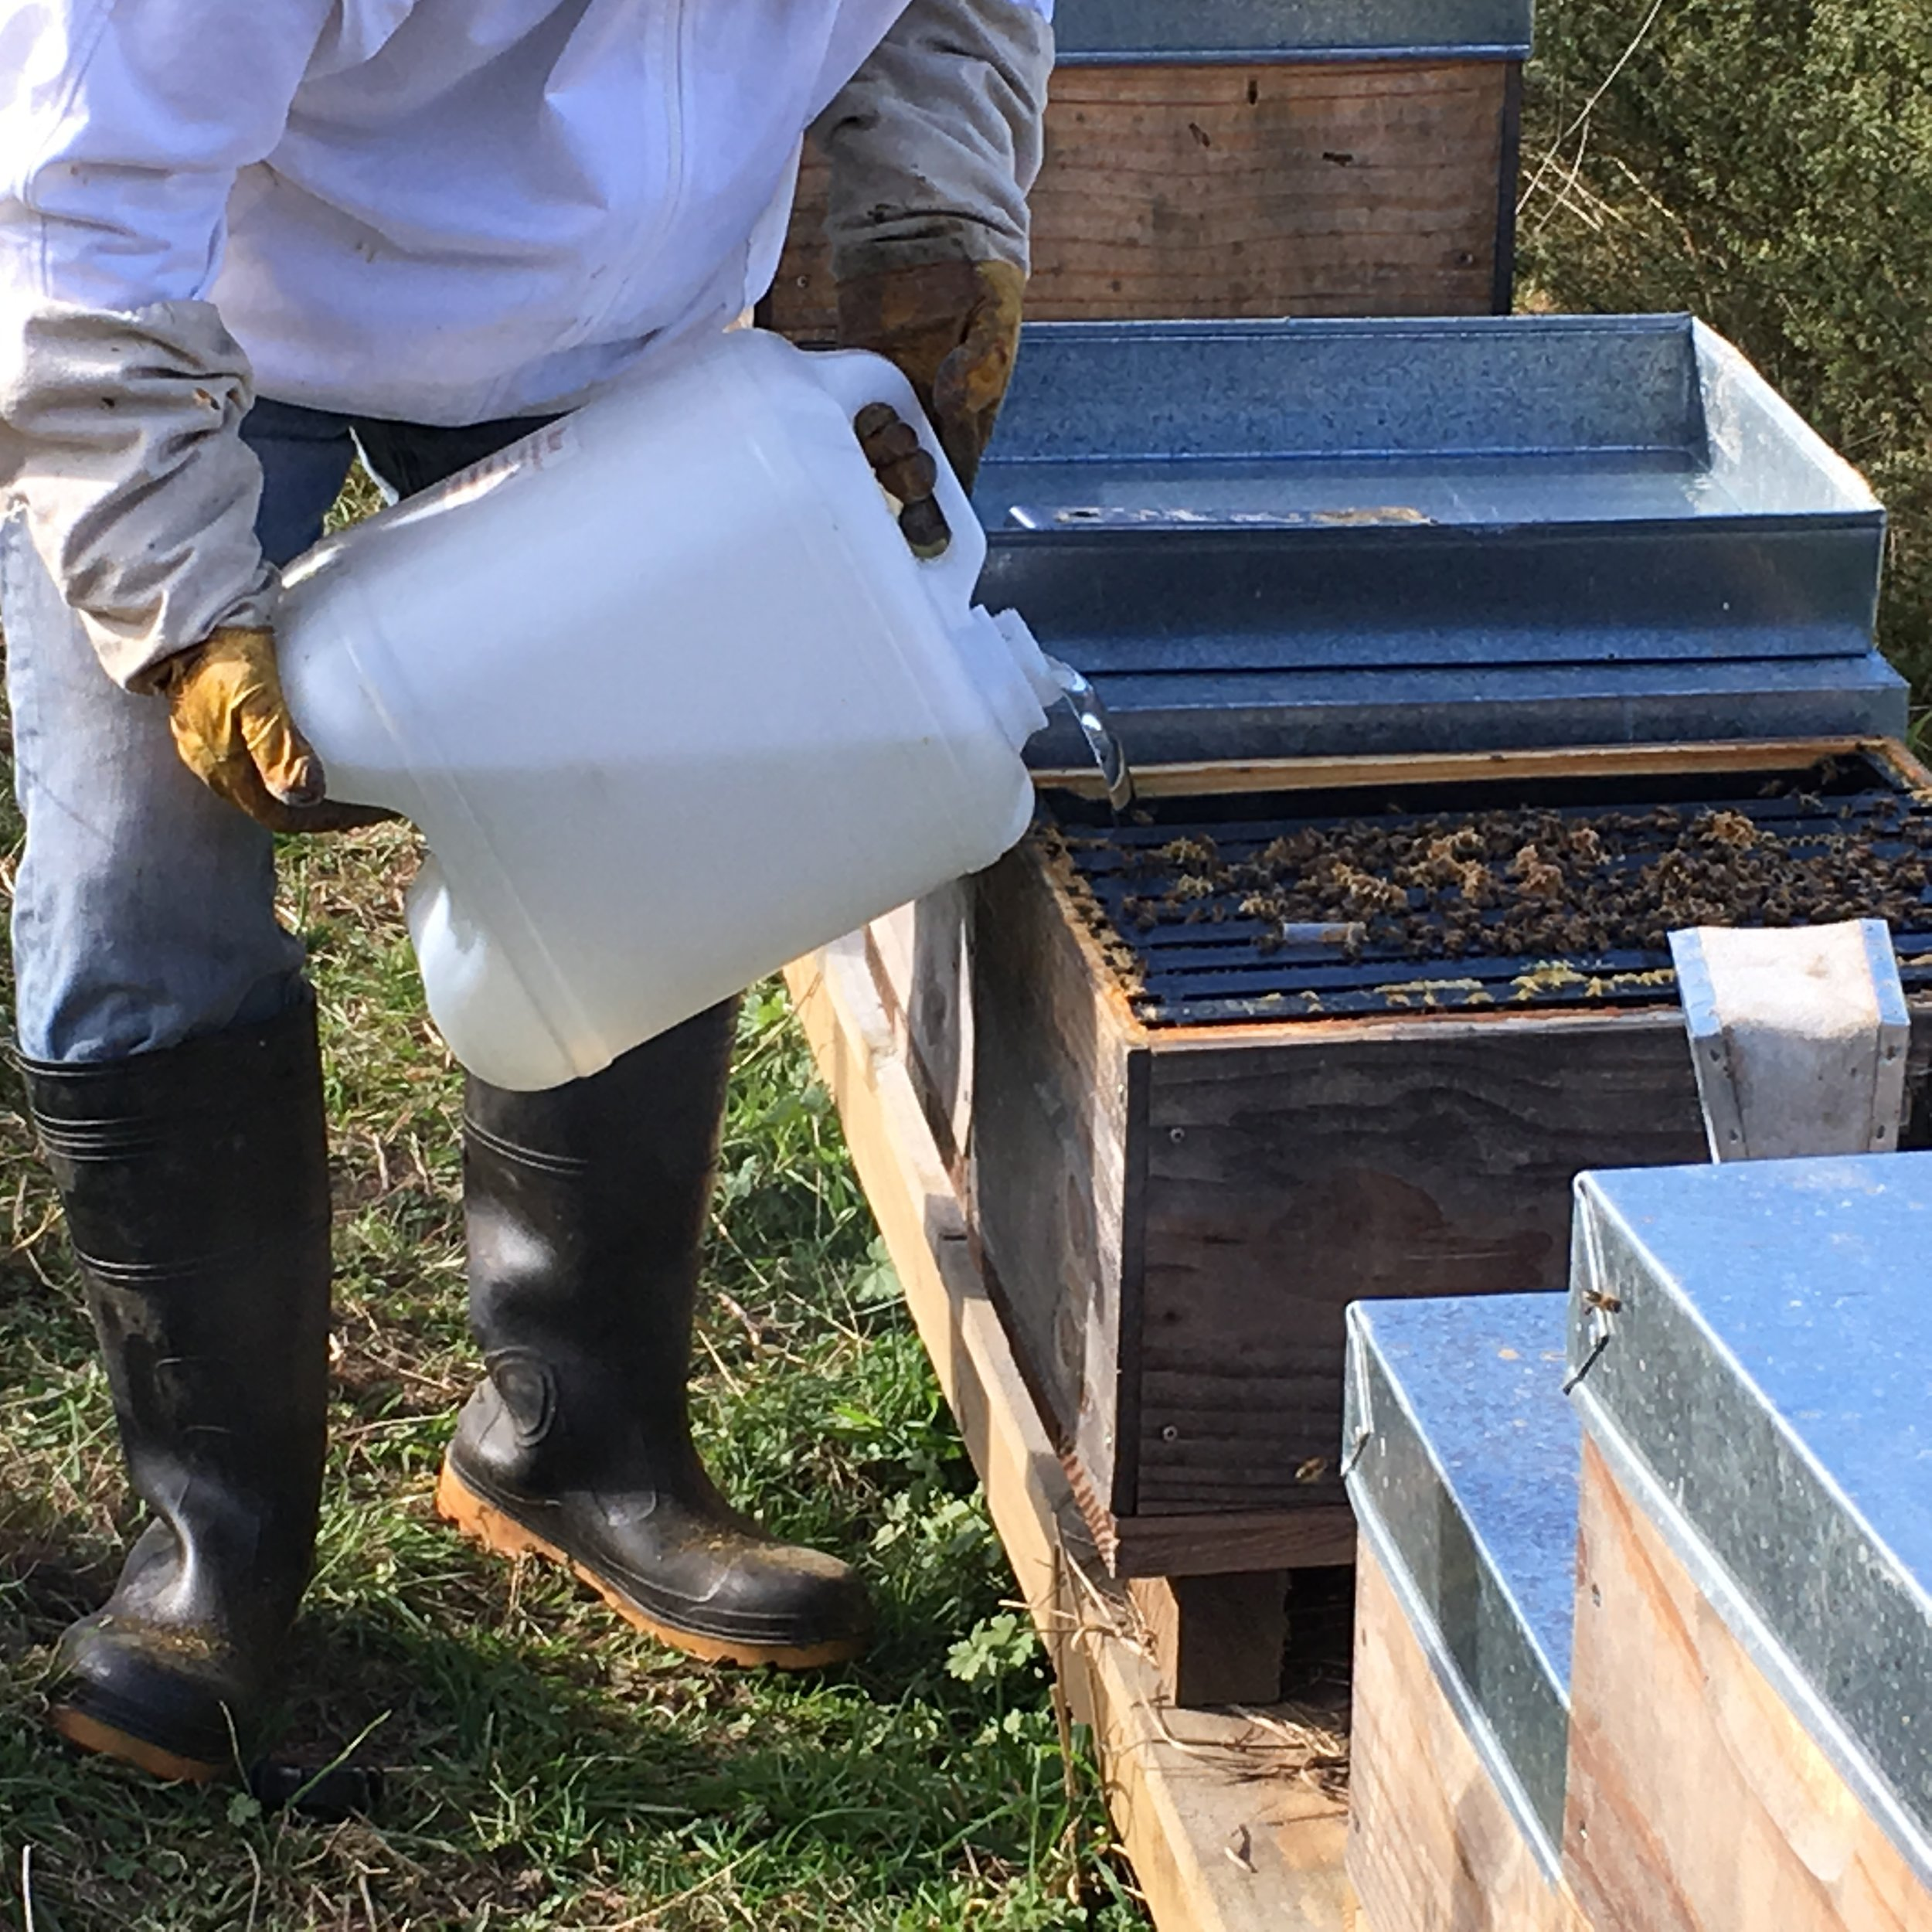 Feeding sugar syrup to bees